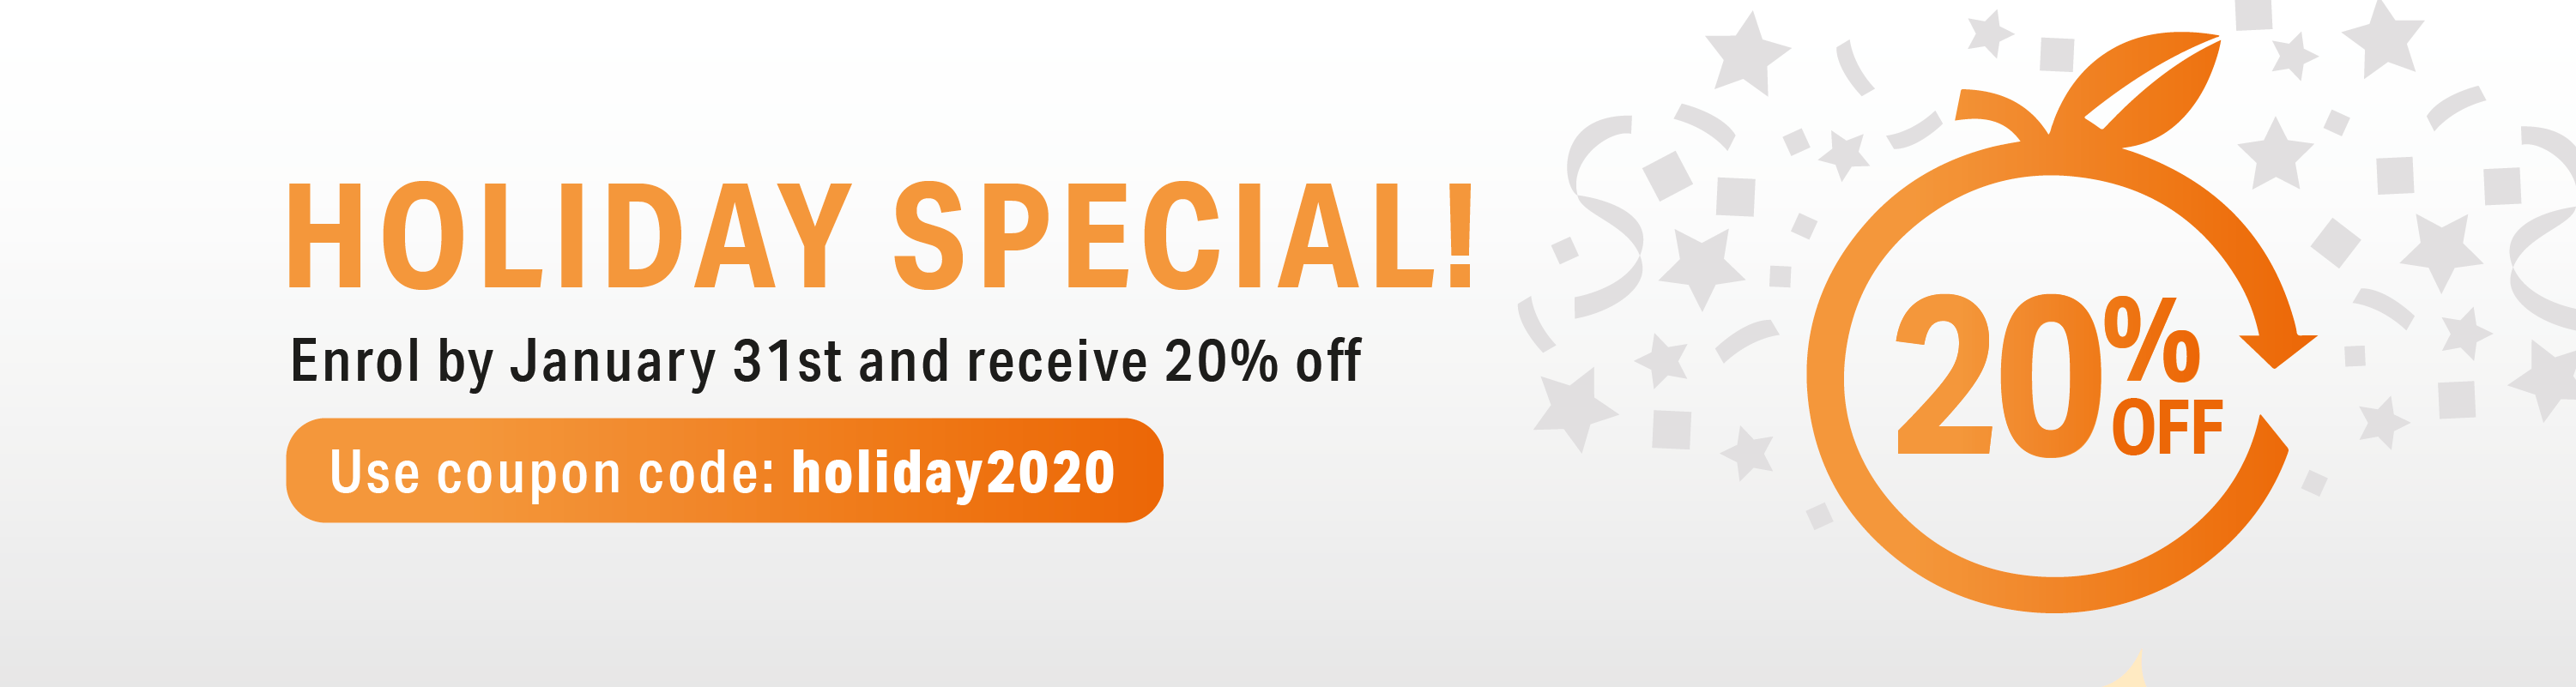 20% off christmas special!